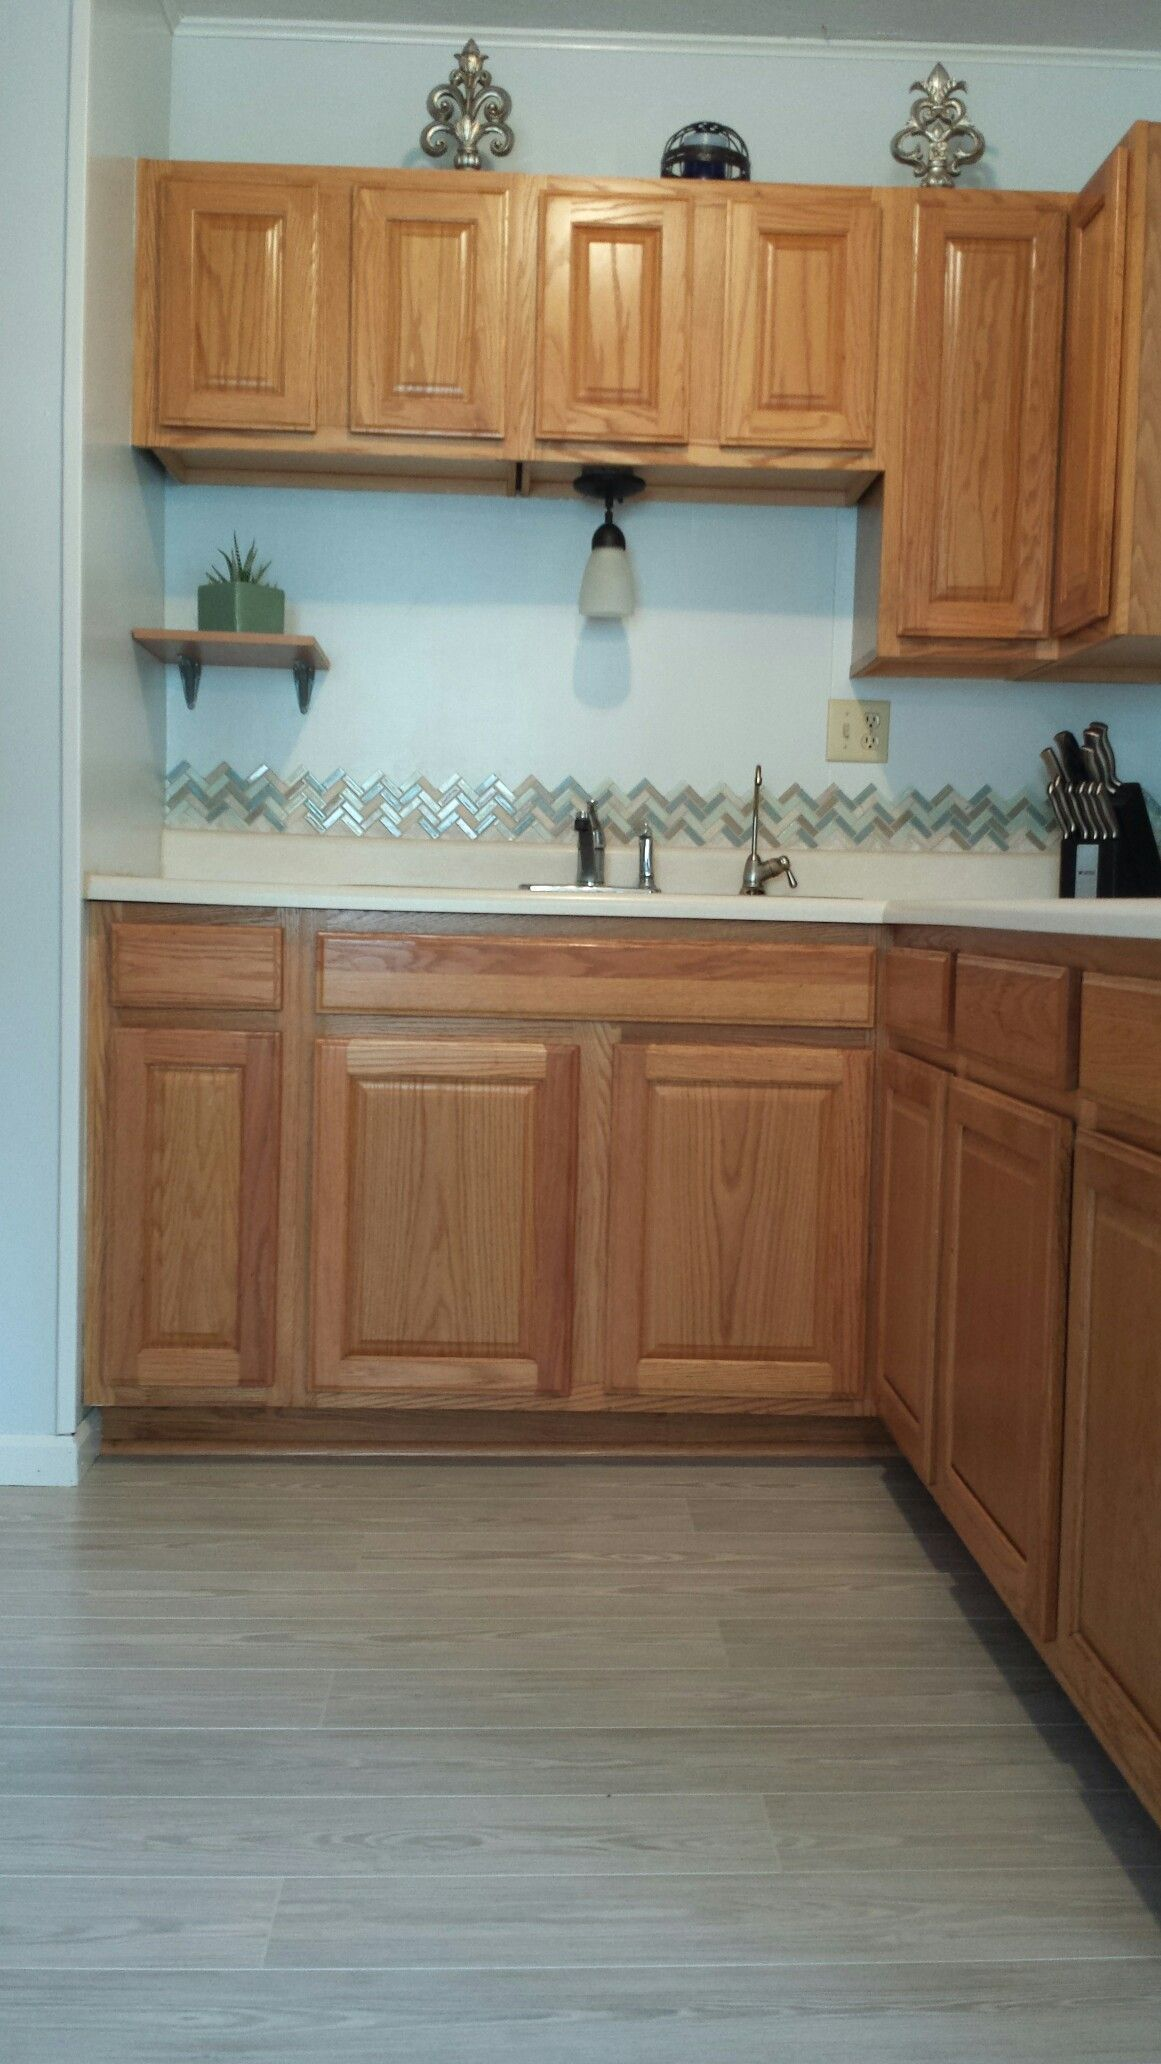 44 Enchanting Wooden Kitchen Flooring Decornish Dot Com Kitchen Cabinets And Flooring Honey Oak Cabinets Oak Cabinets